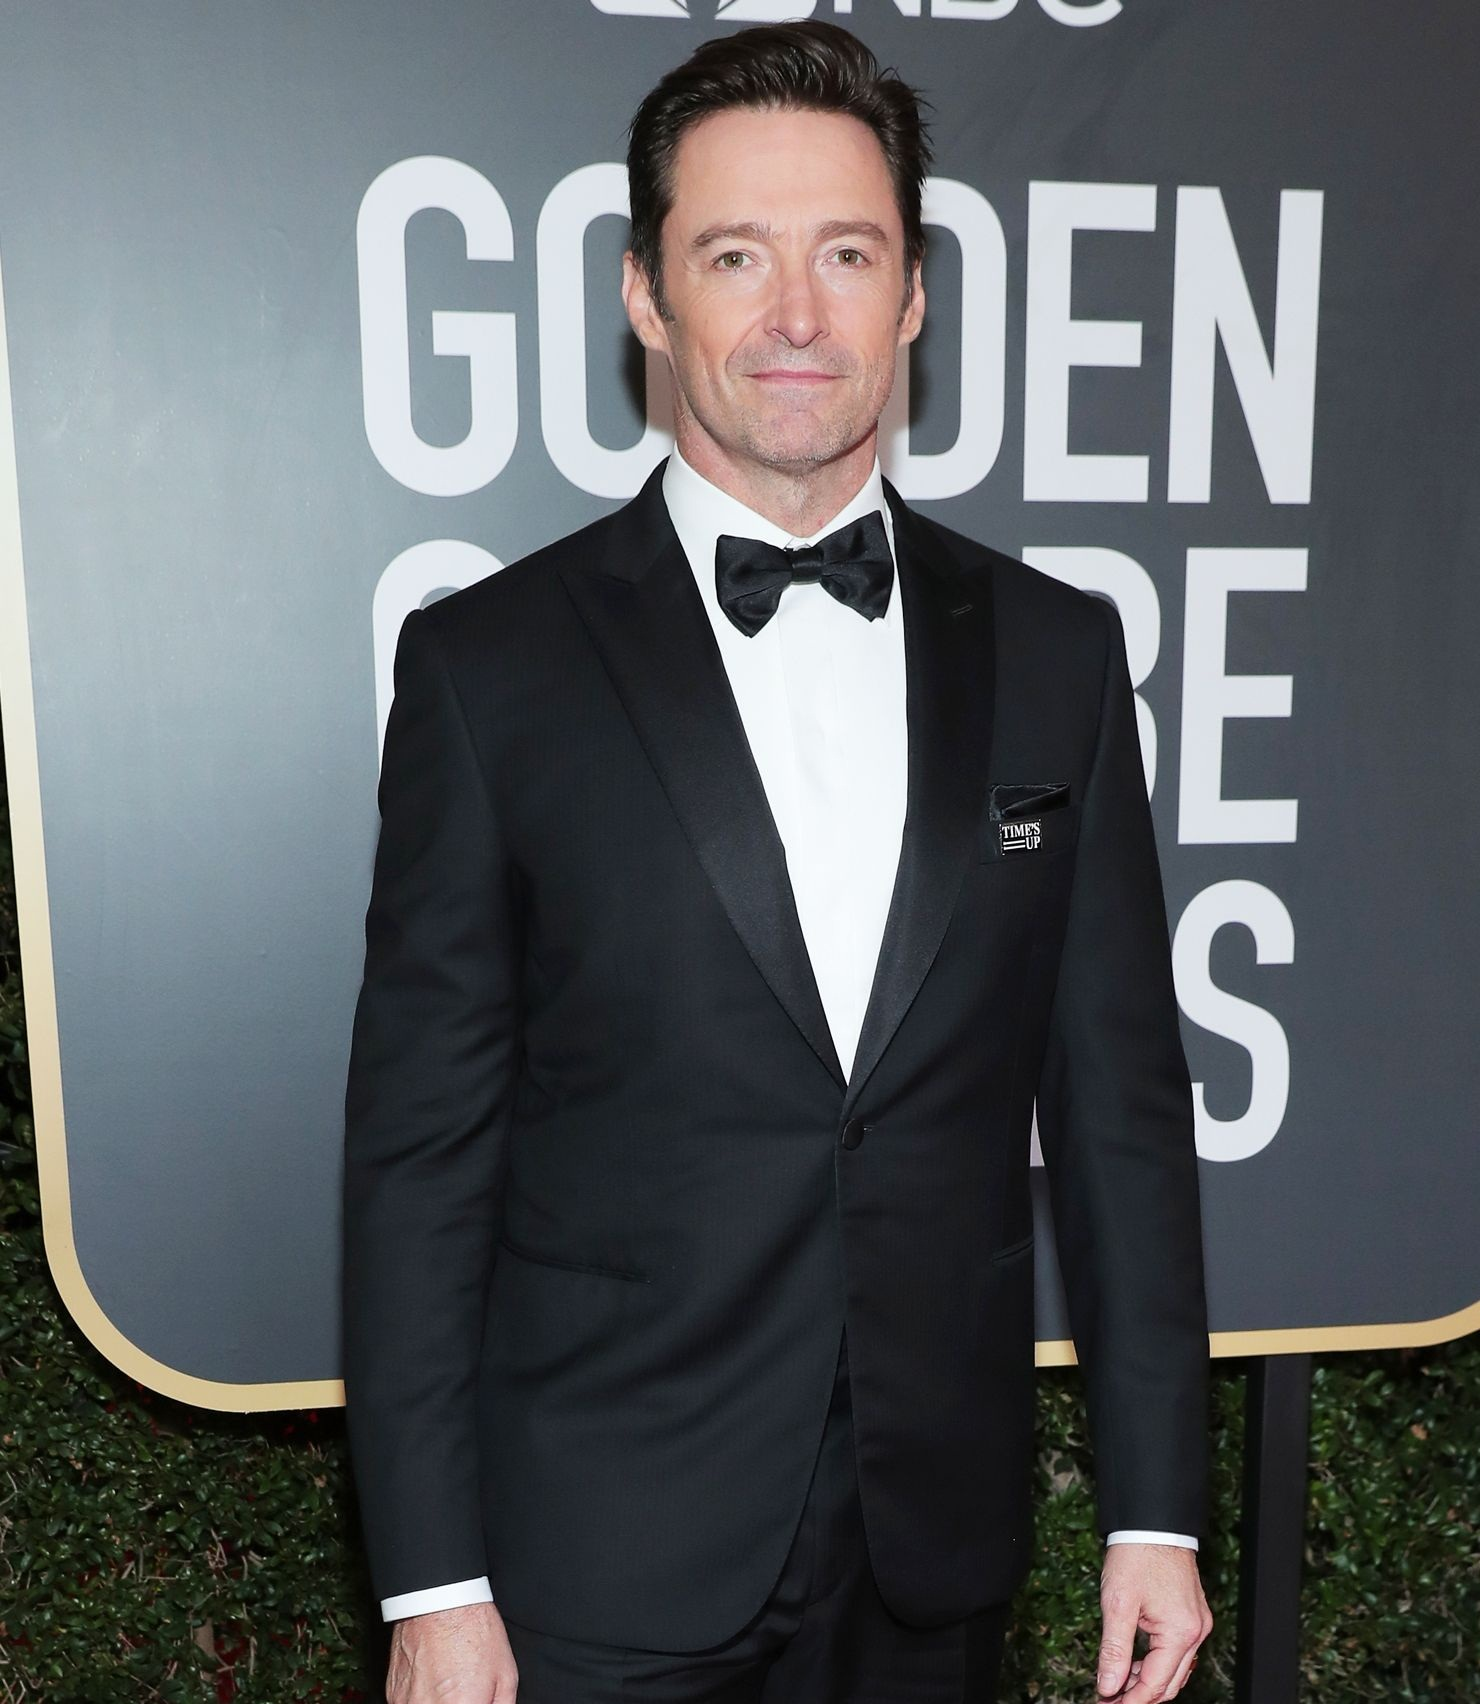 Hugh Jackman Age, Height, Wife, Net Worth, Kids, Family, Facts